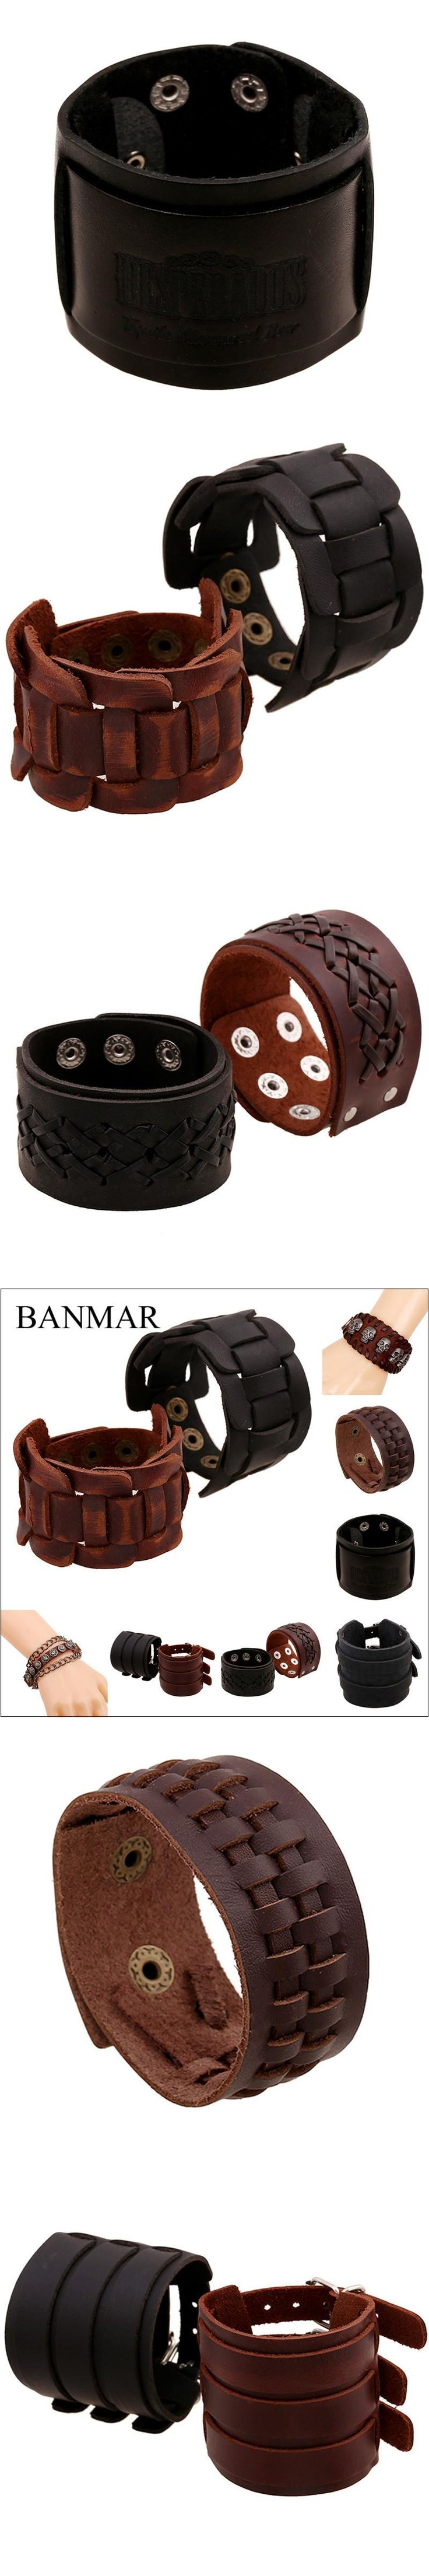 BANMAR Punk Braided Black & Brown Genuine Leather Bracelet With Alloy Buckle Adjustable Fashion Women & Men Bracelets Jewelry